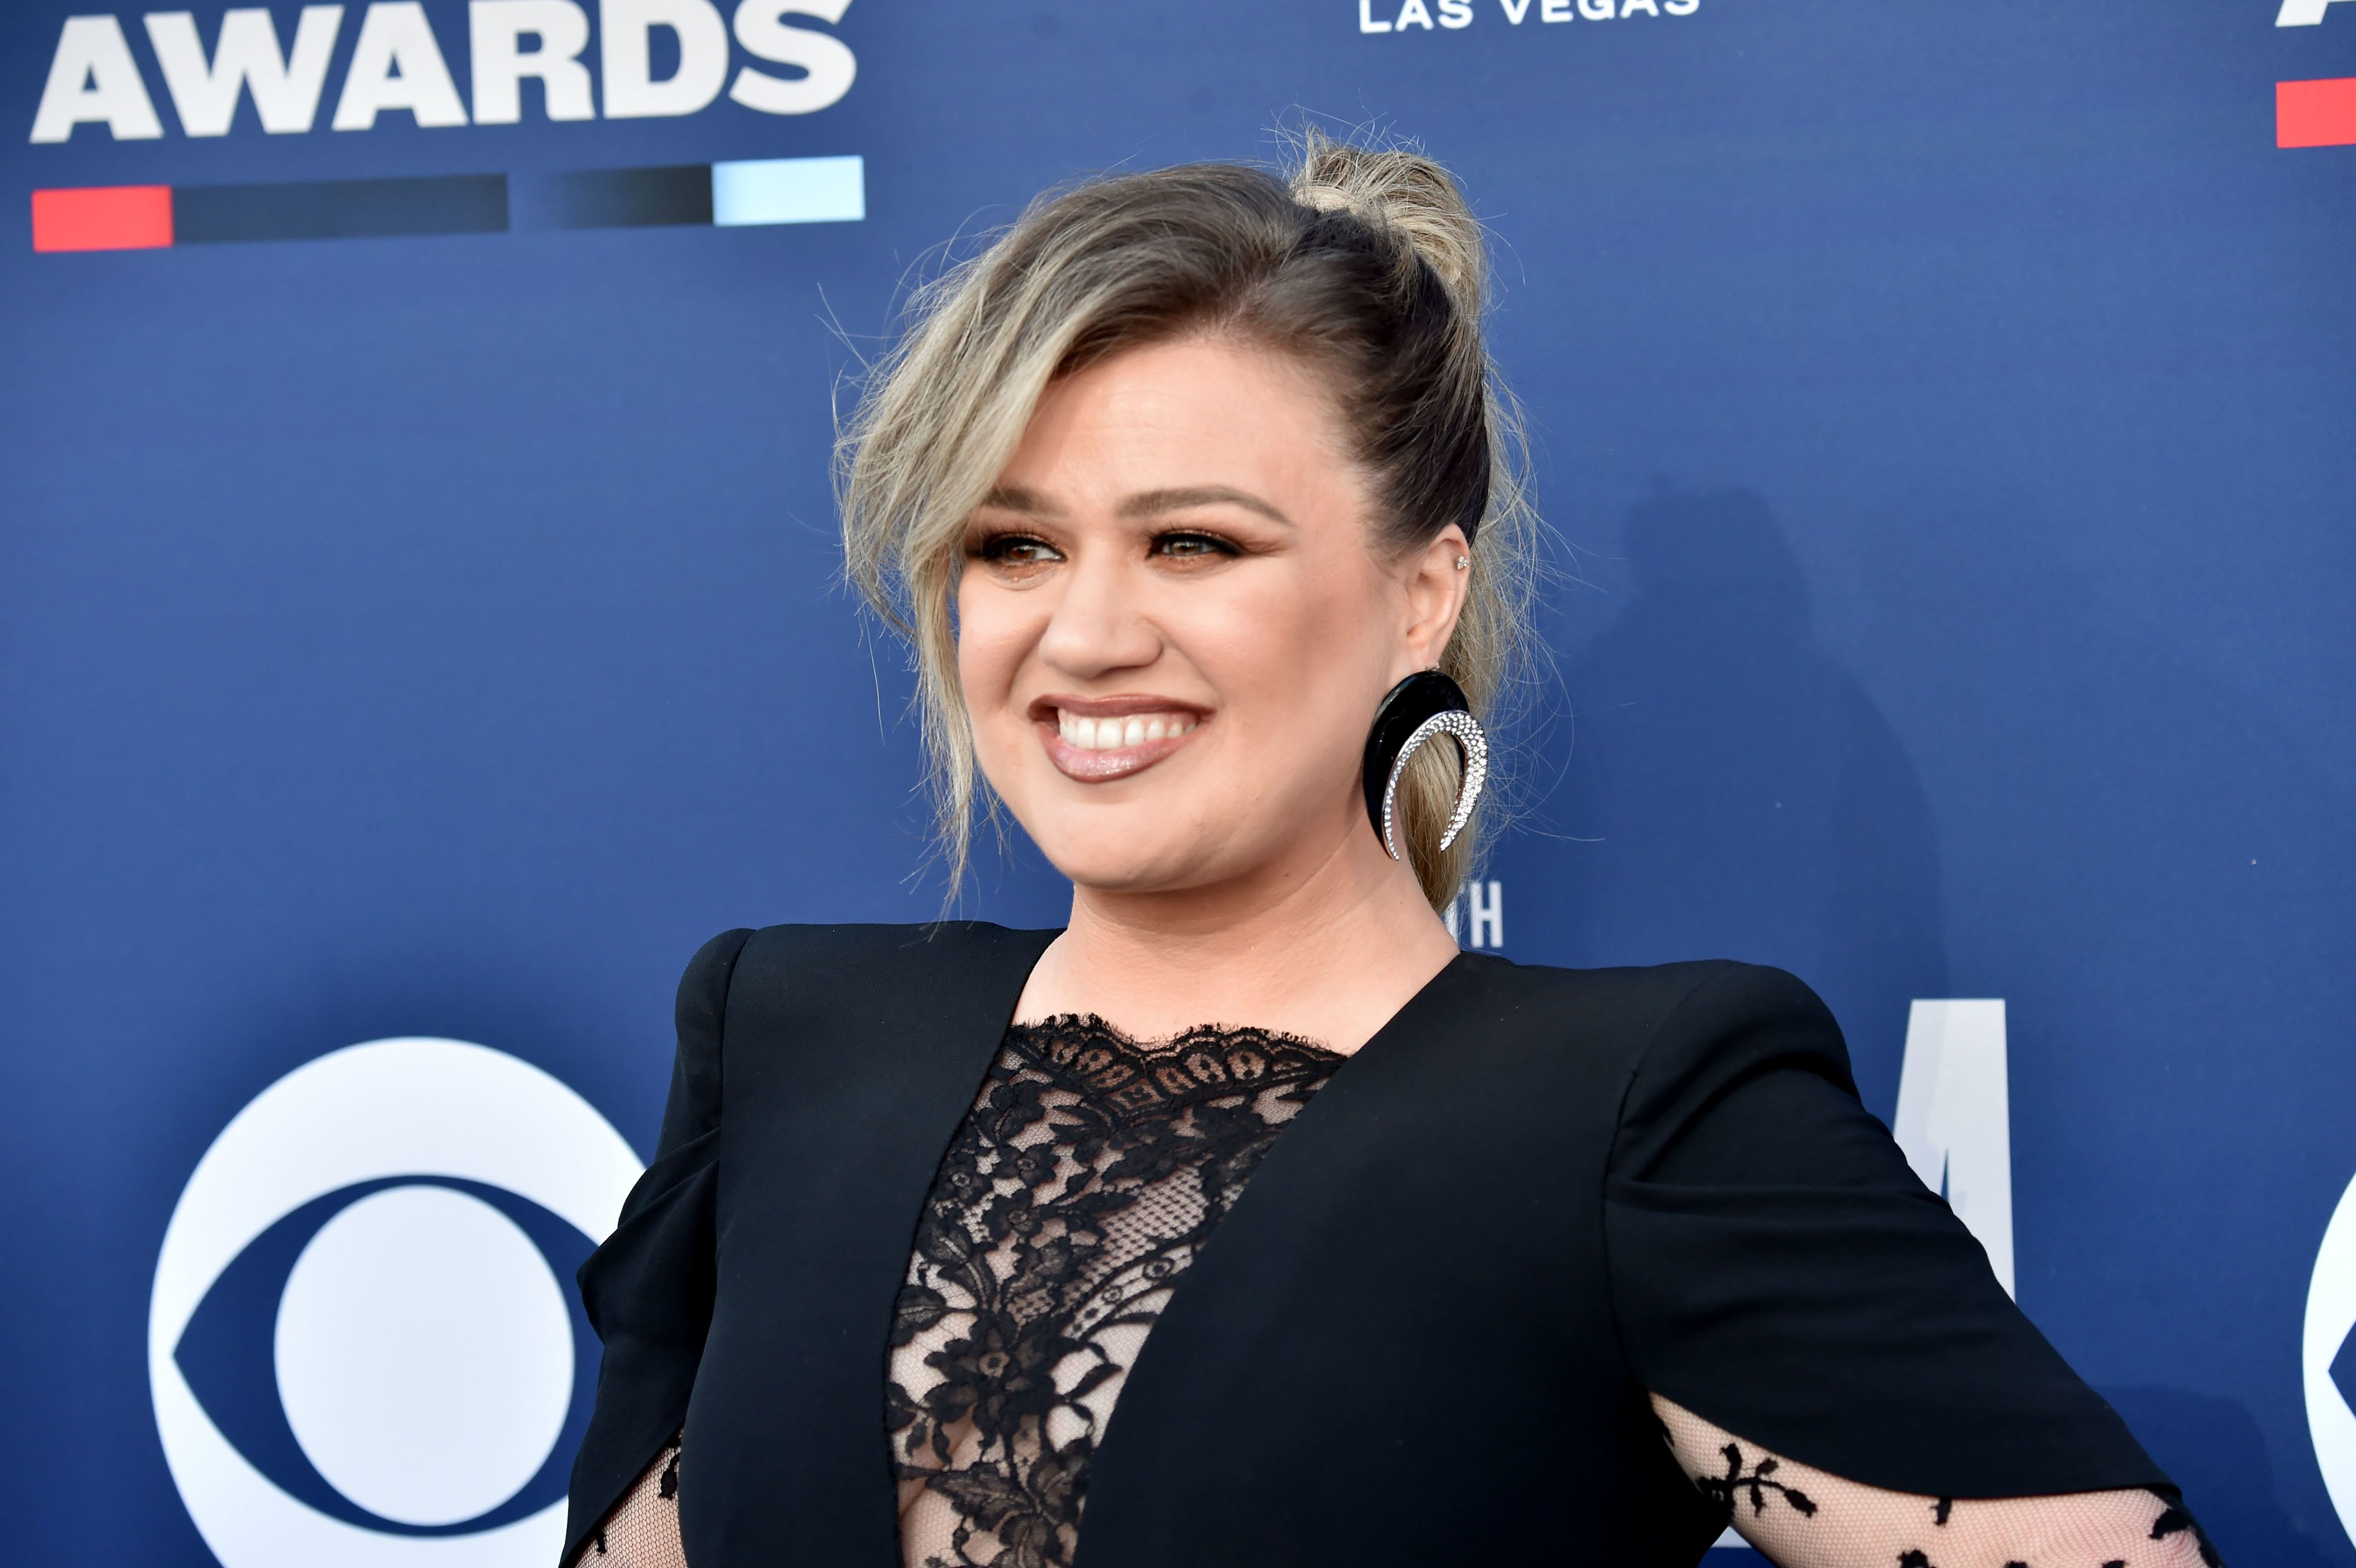 LAS VEGAS, NEVADA - APRIL 07: Kelly Clarkson attends the 54th Academy Of Country Music Awards at MGM Grand Hotel & Casino on April 07, 2019 in Las Vegas, Nevada. (Photo by Jeff Kravitz/FilmMagic)